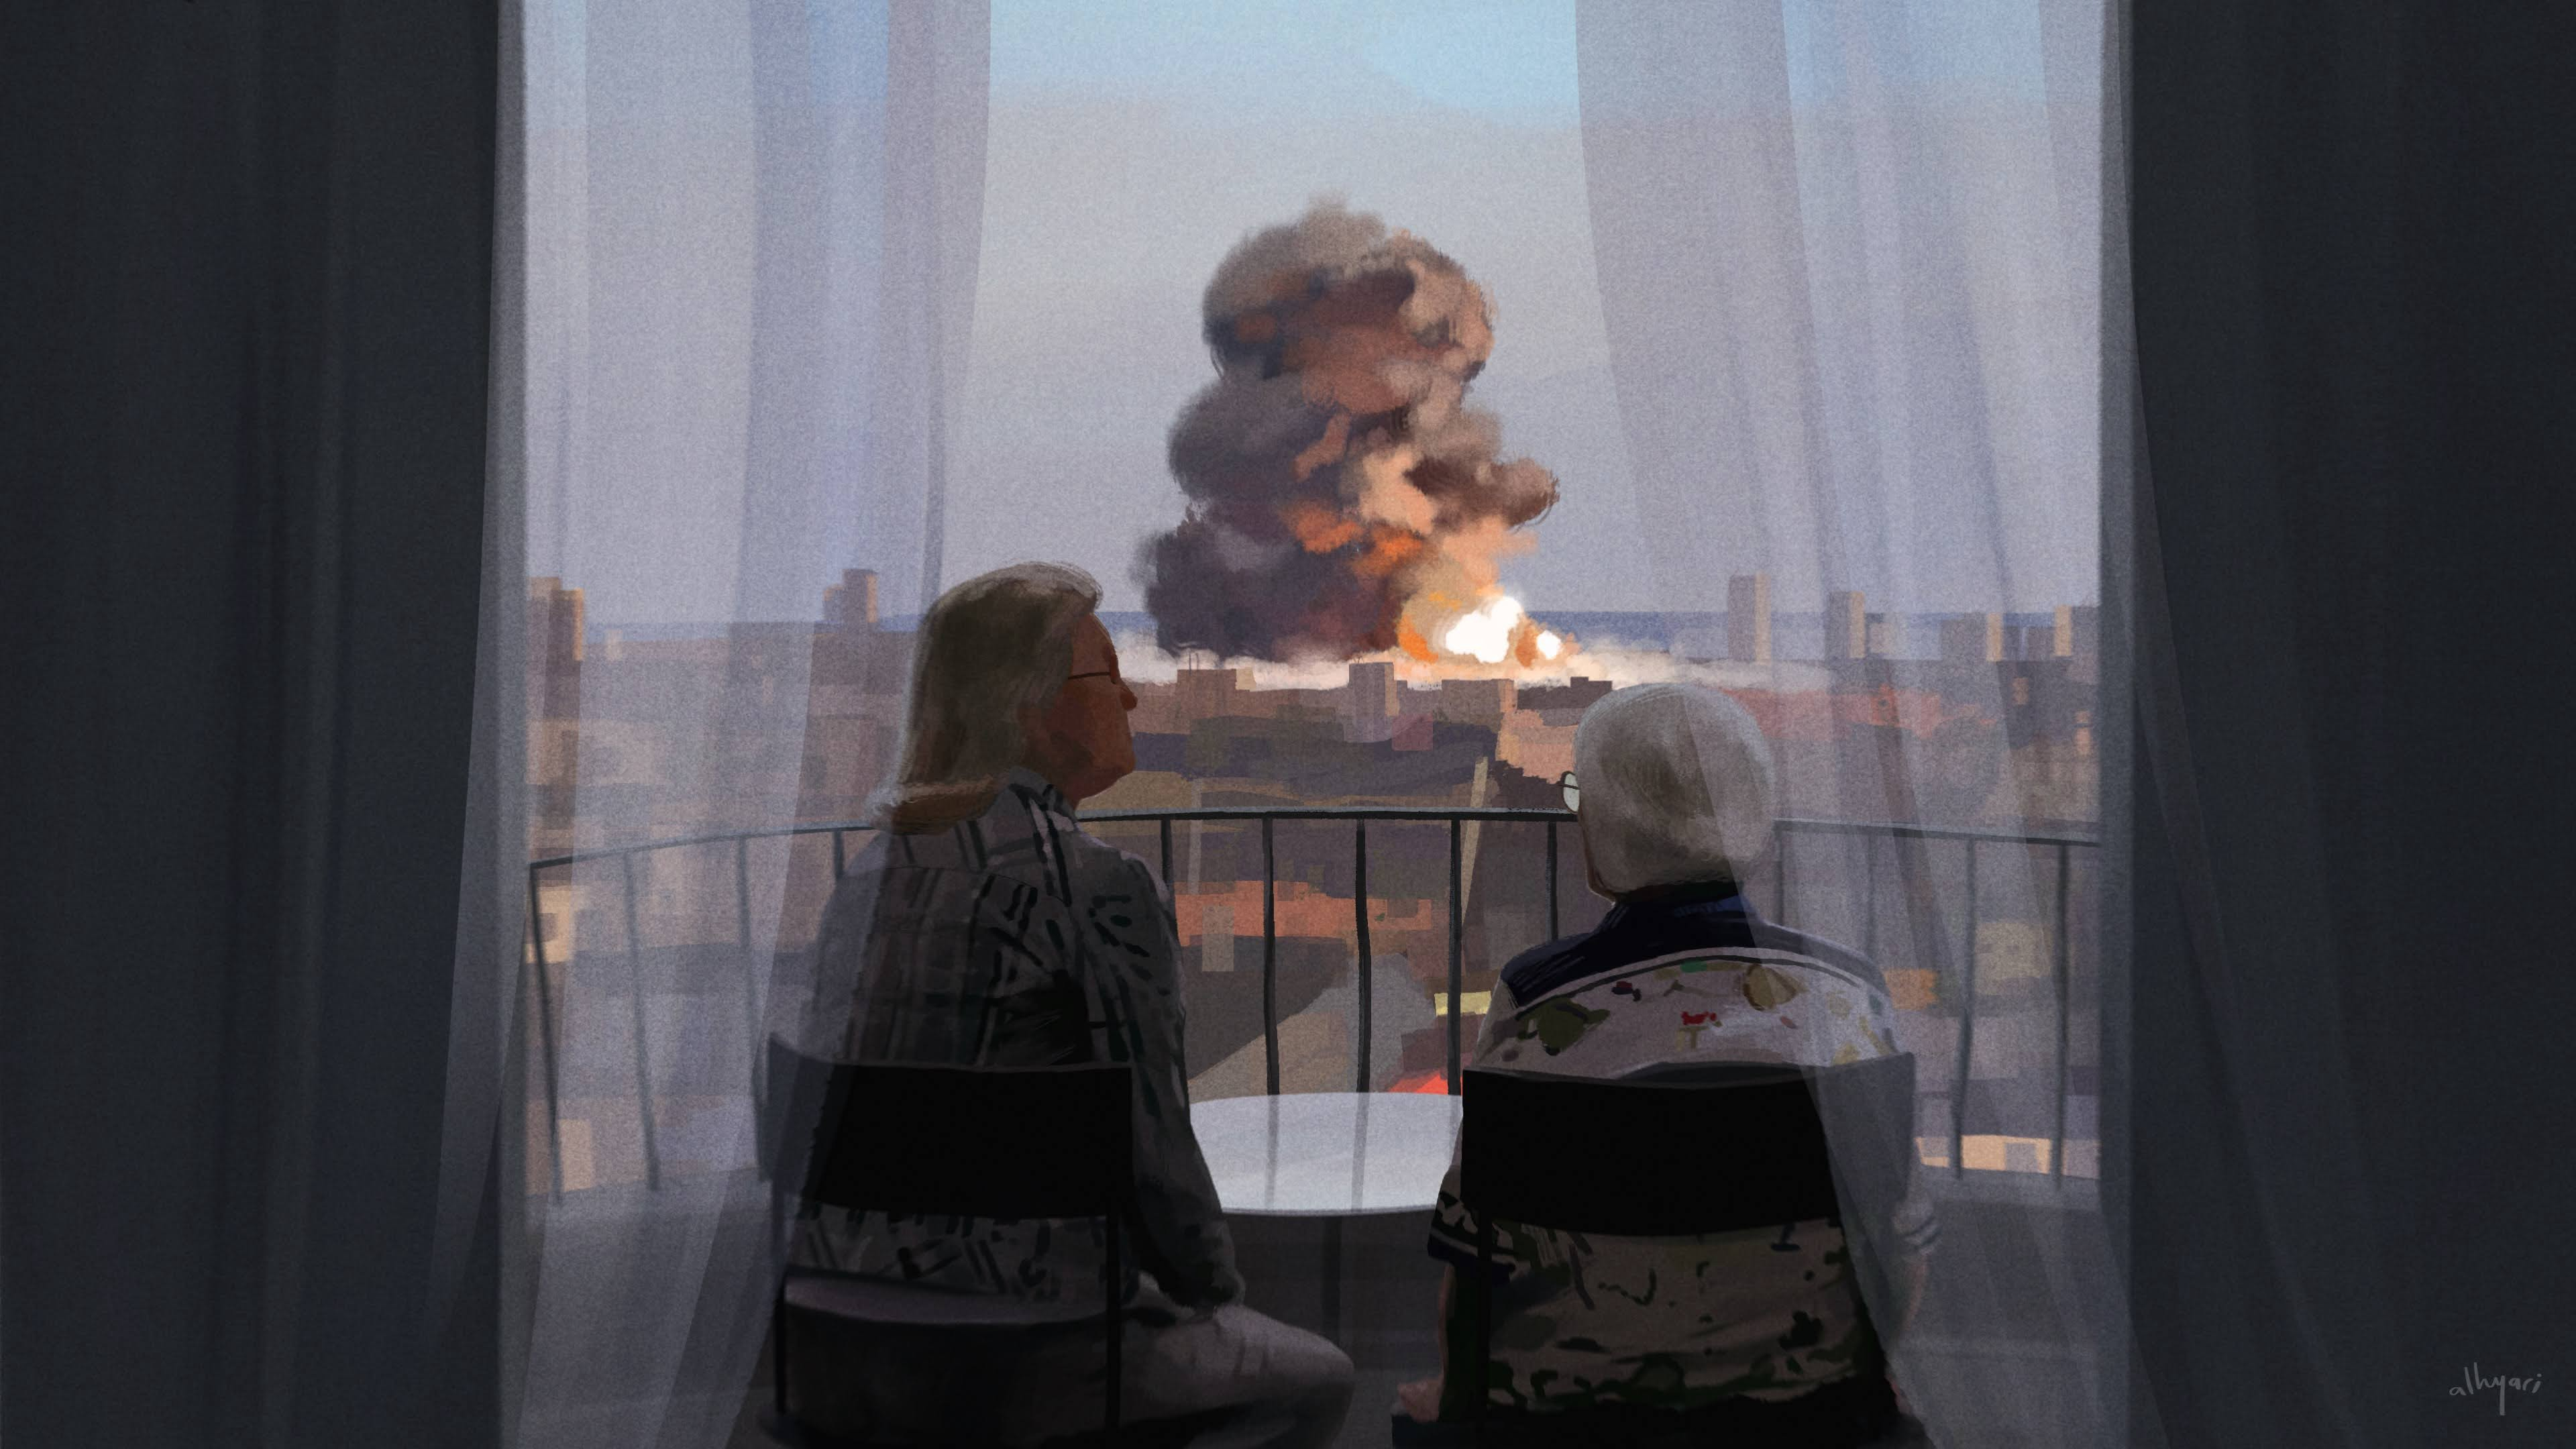 Two women chatting uniterrupted by the big explosion nearby. Inspired by Beirut explosion. Digital painting by Alhyari Art.